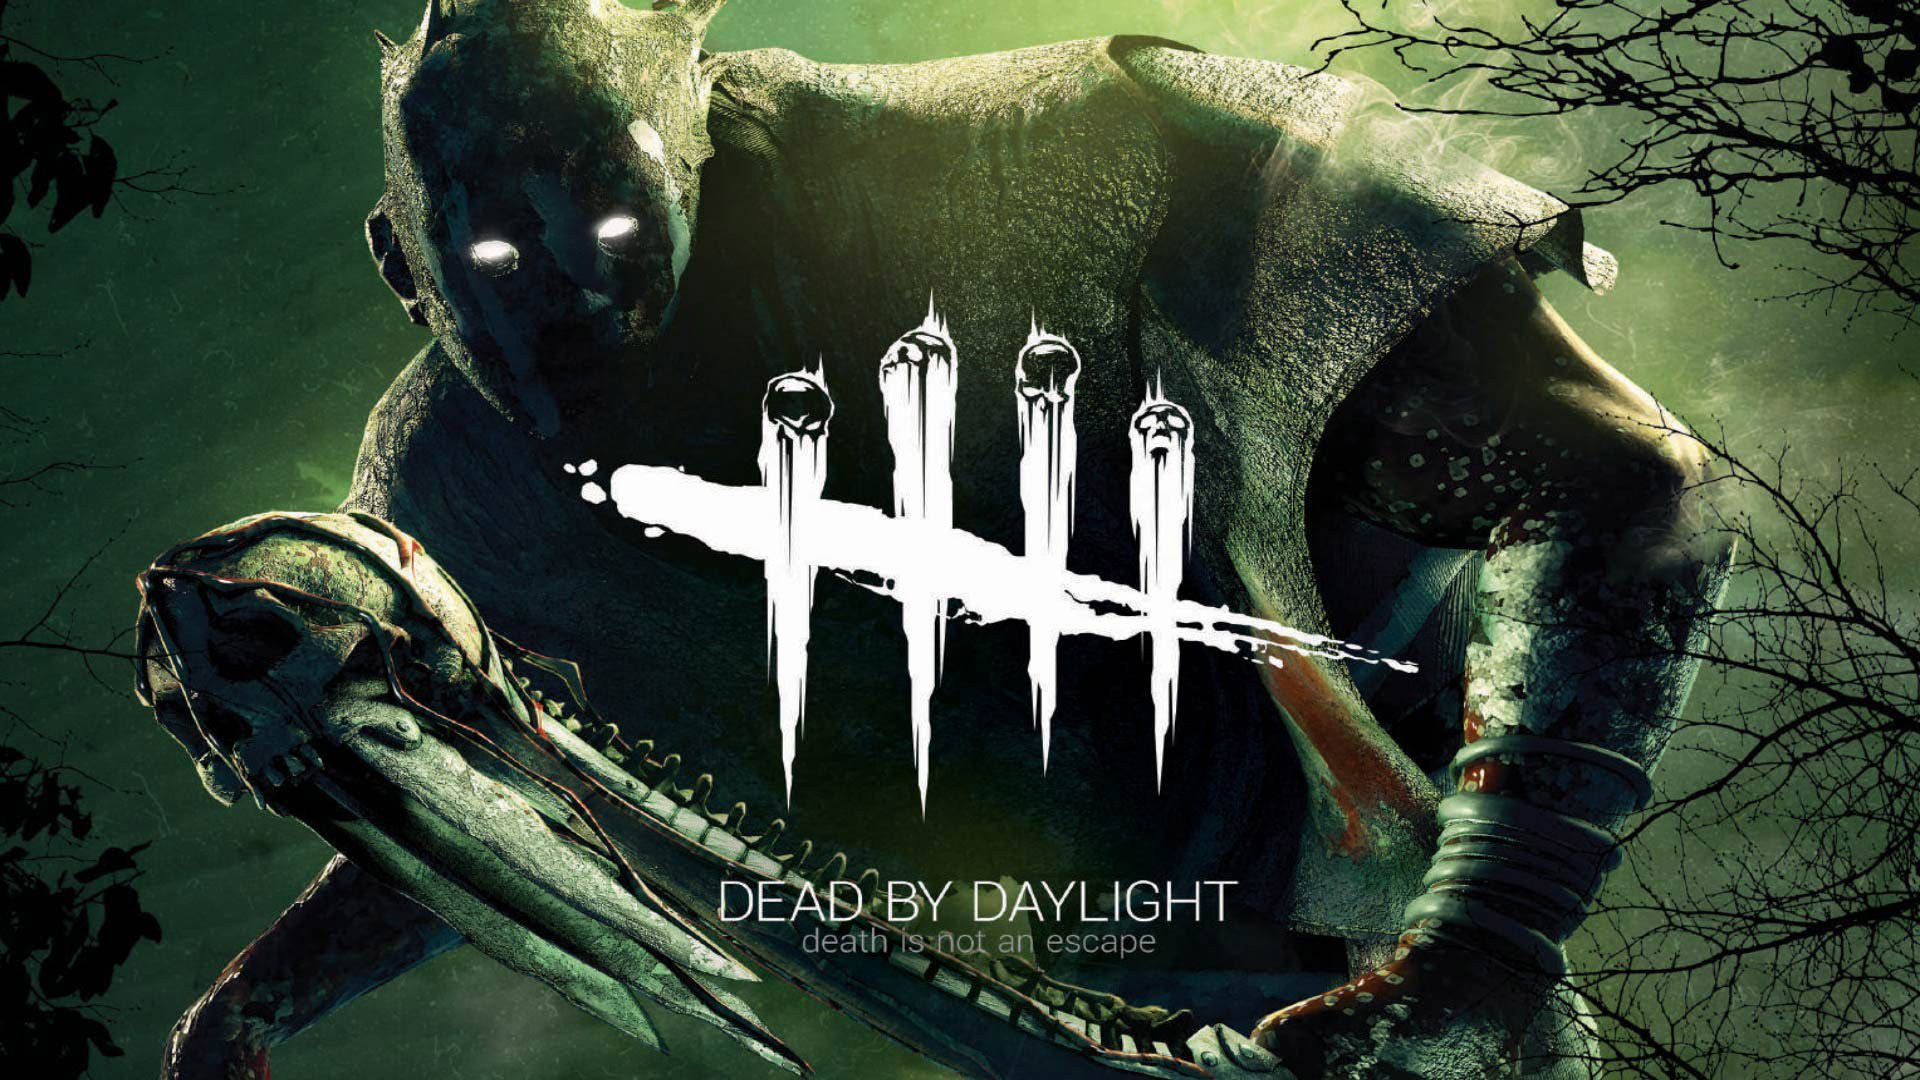 Free Dead by Daylight Wallpaper in 1920x1080